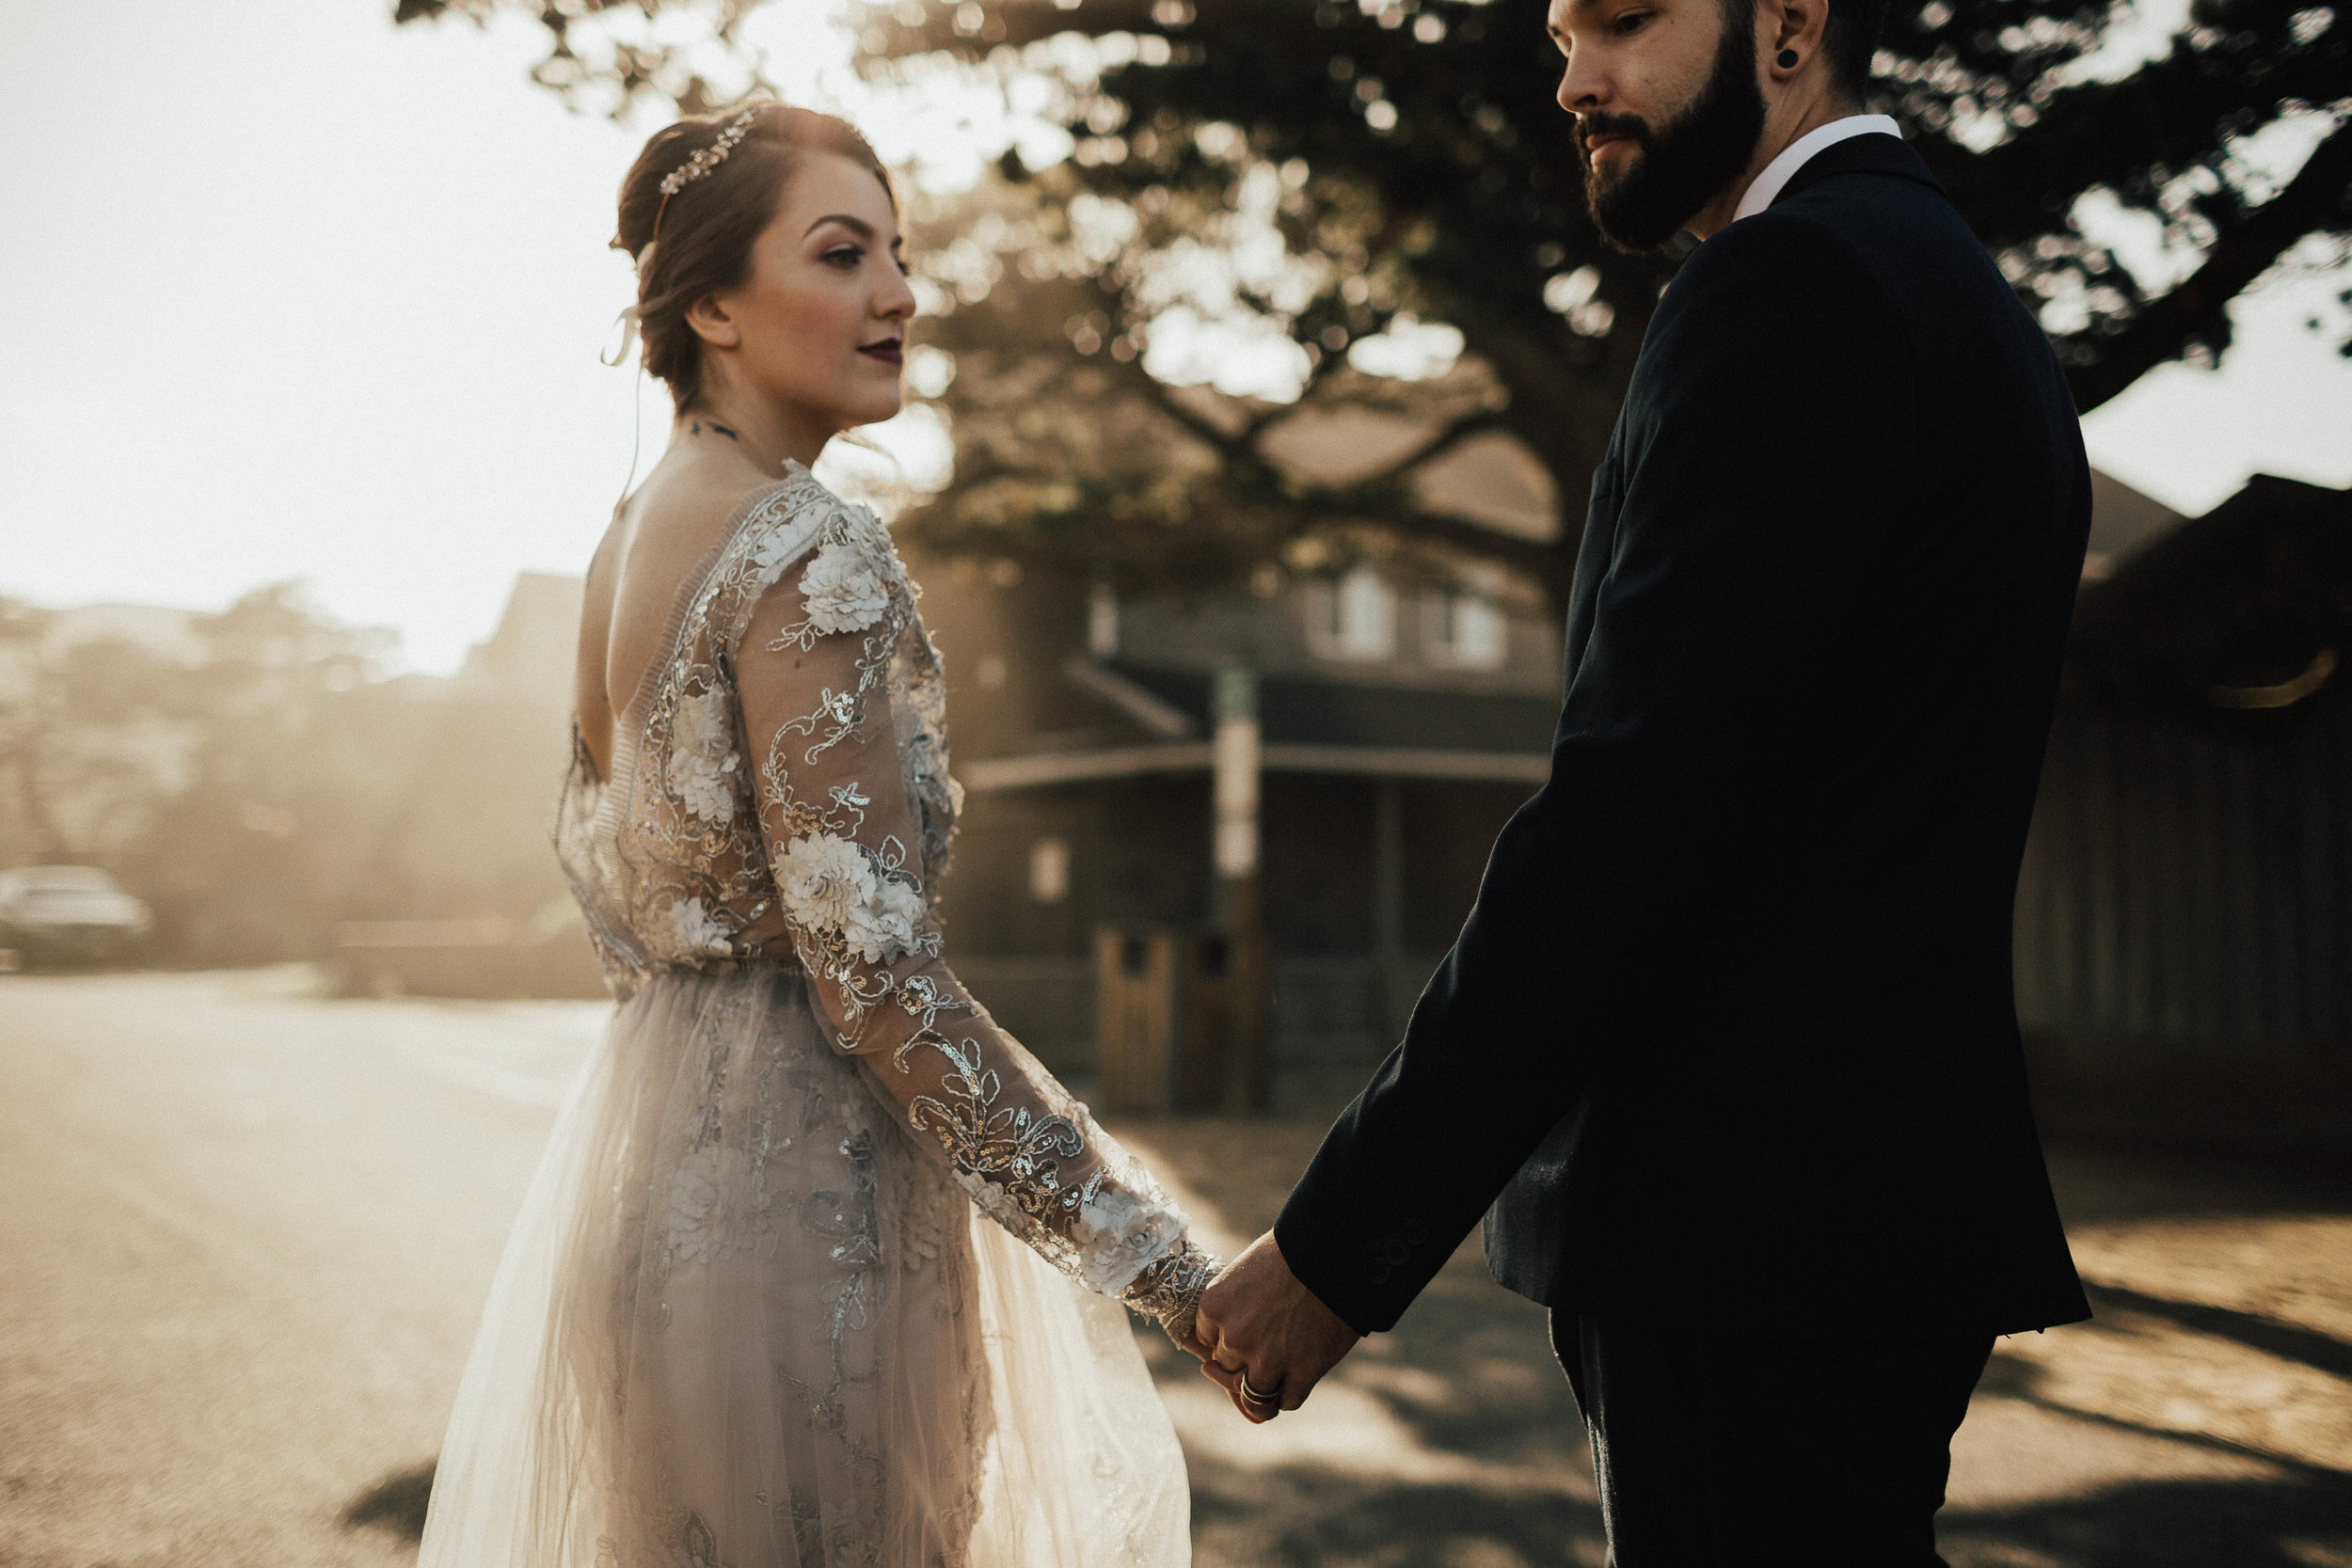 Cannon Beach Elopement - Michelle Larmand Photography - 001